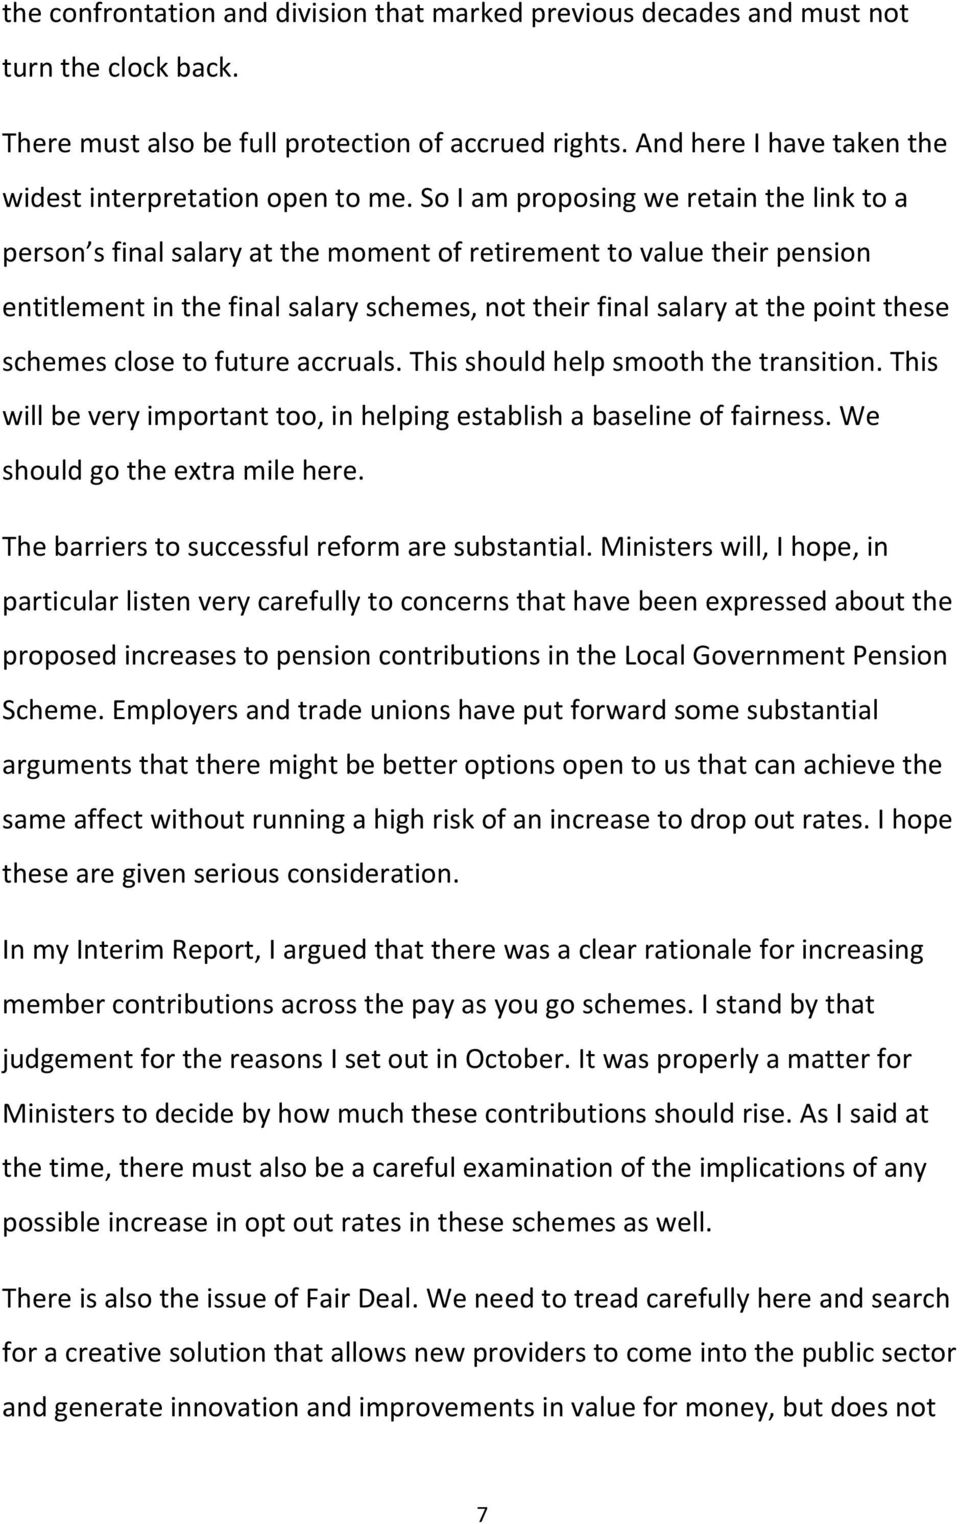 So I am proposing we retain the link to a person s final salary at the moment of retirement to value their pension entitlement in the final salary schemes, not their final salary at the point these